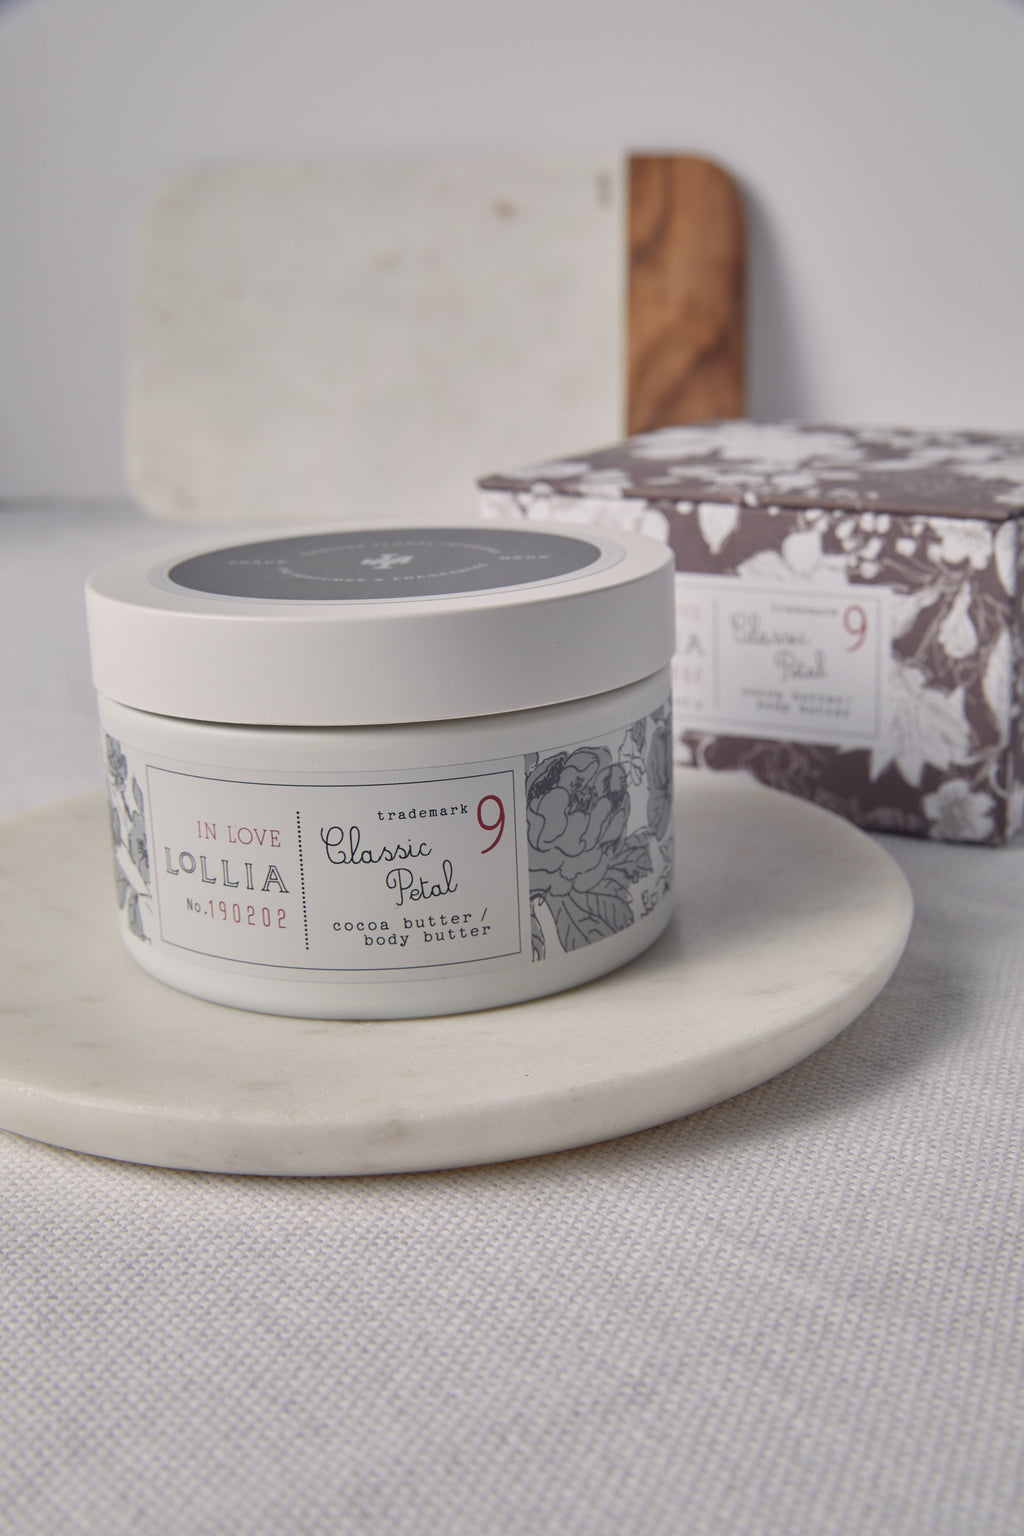 In Love Whipped Body Butter - P I C N I C